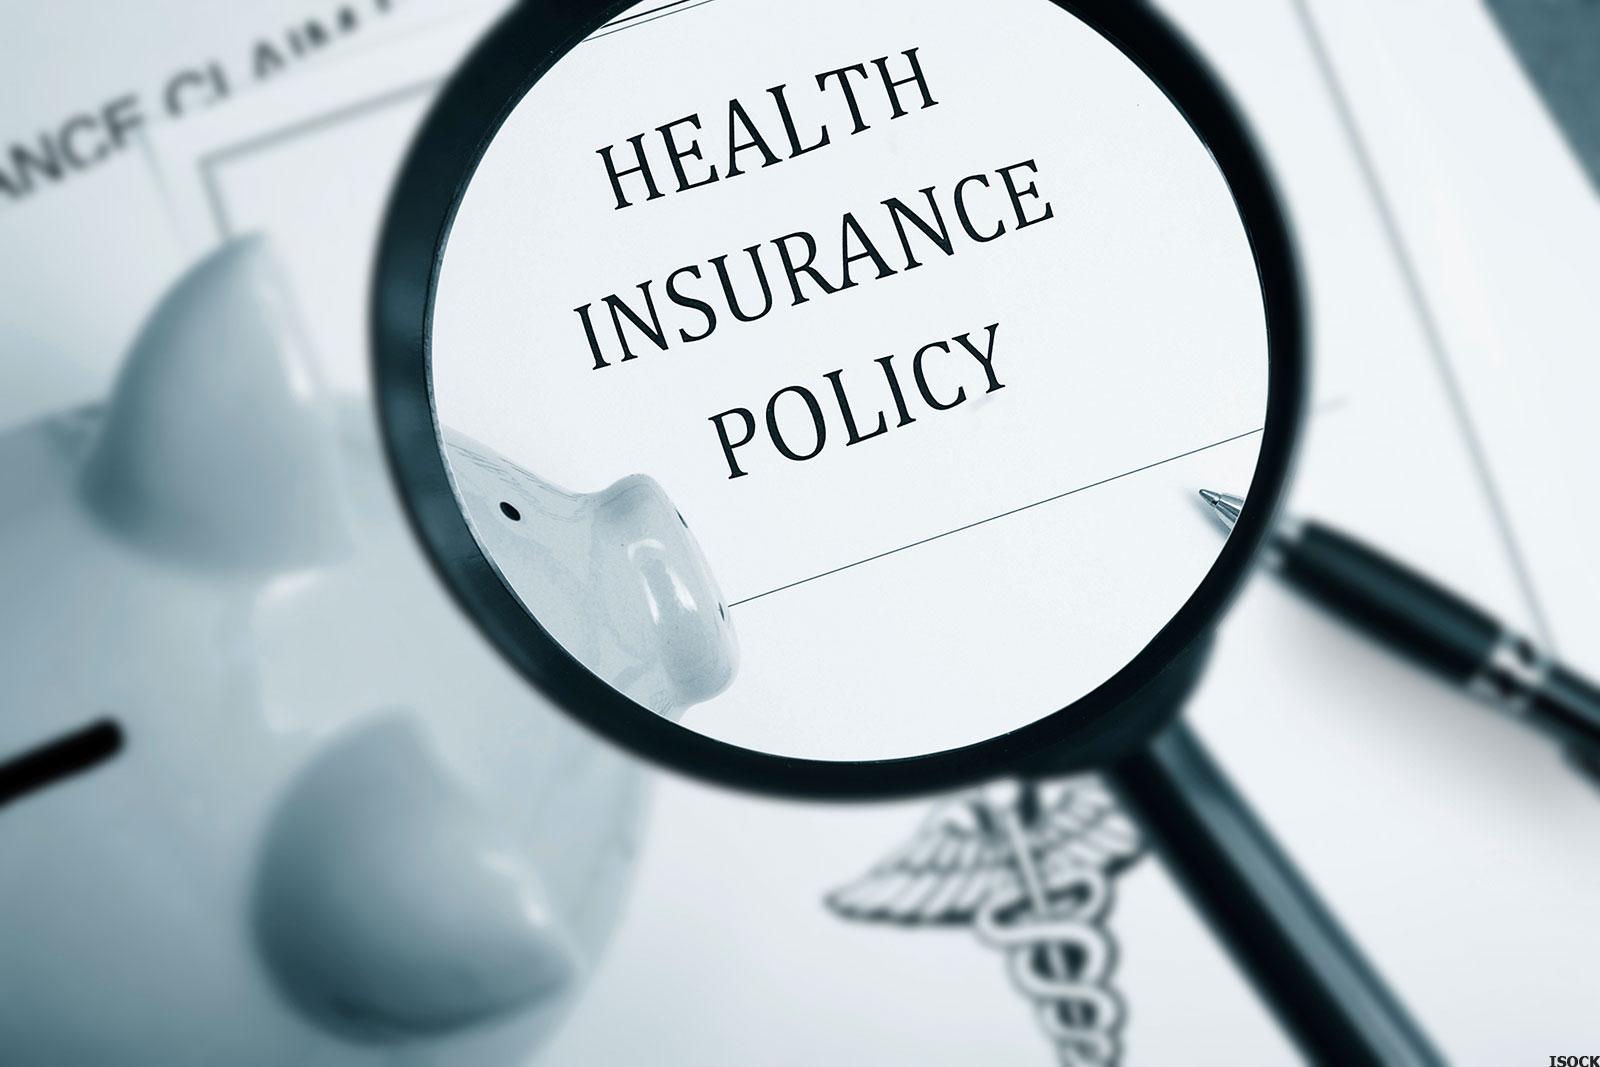 How to find best Texas health insurance plan?